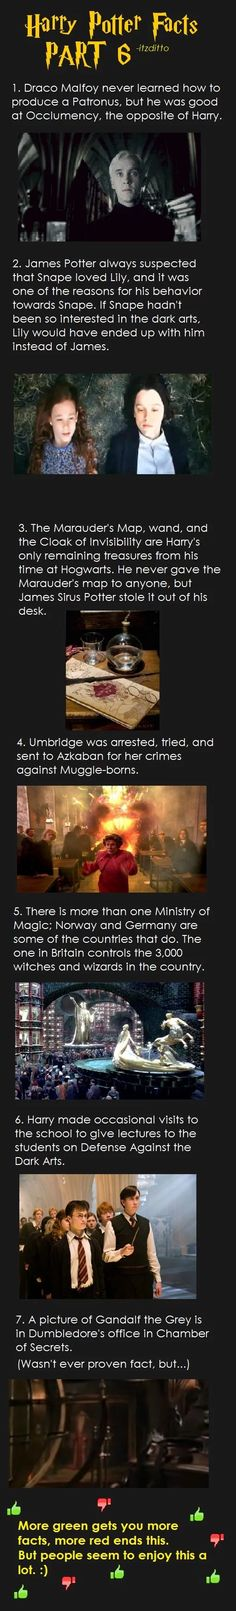 Here Are The Harry Potter Facts 1-9 In One Post - Imgur